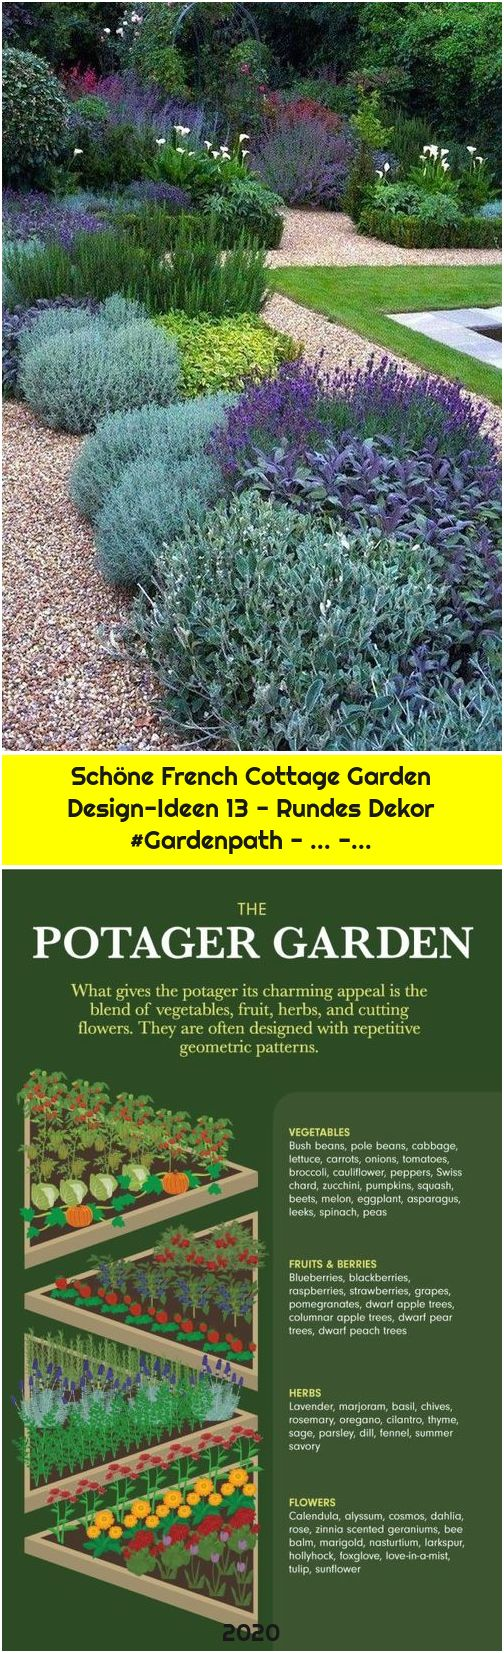 Schöne French Cottage Garden Design-Ideen 13 - Rundes Dekor #Gardenpath - ... -...